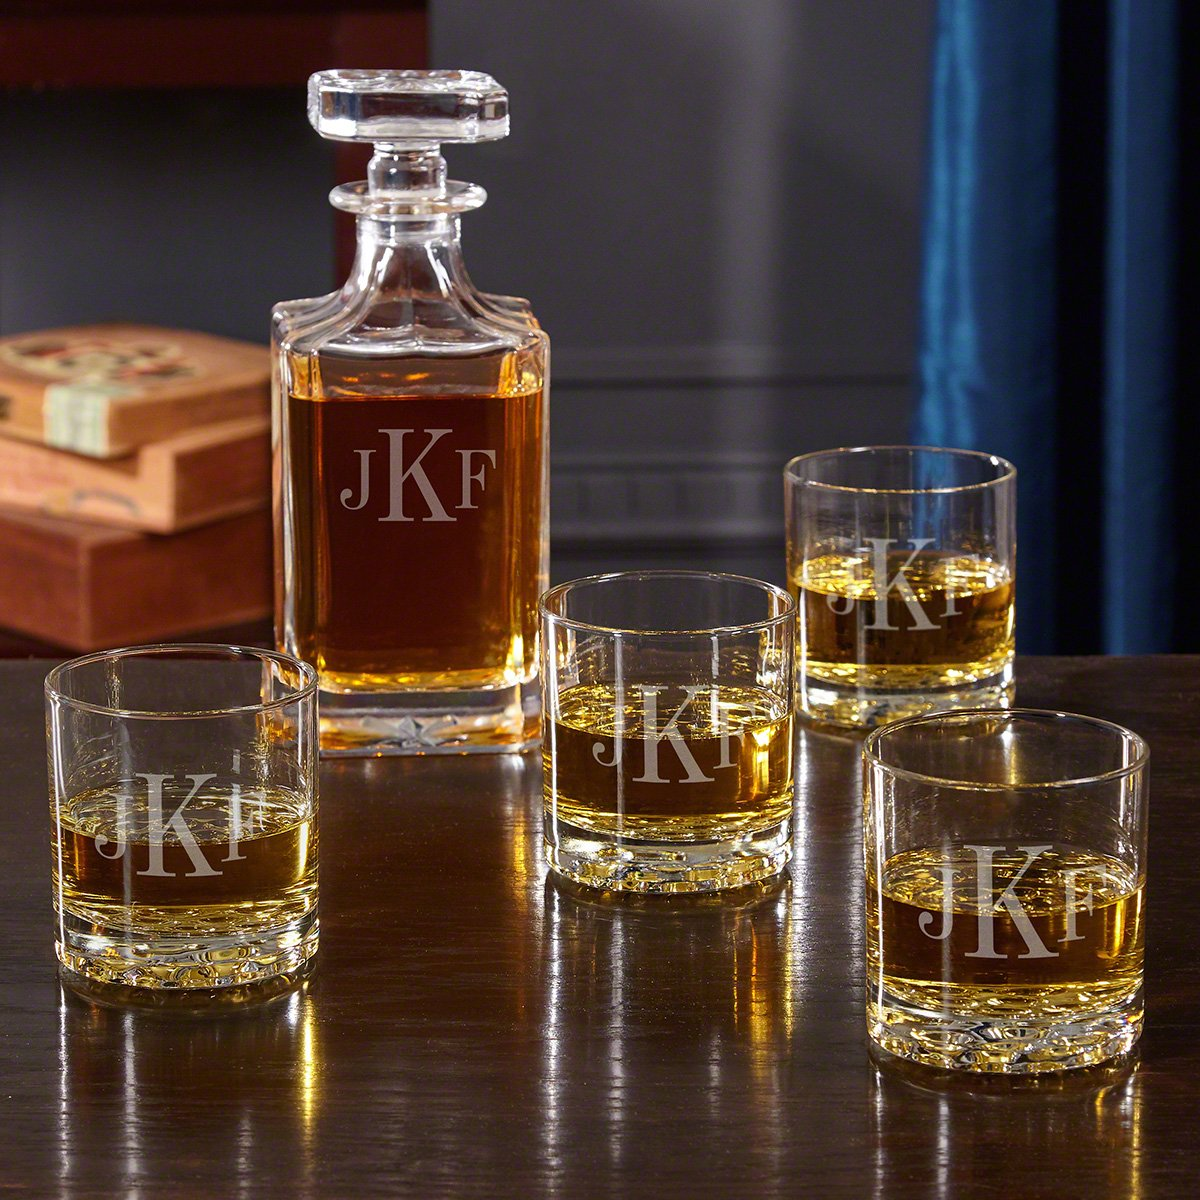 Classic Monogrammed Glasses and Decanter Set by HomeWetBar - Great for Whiskey Lovers